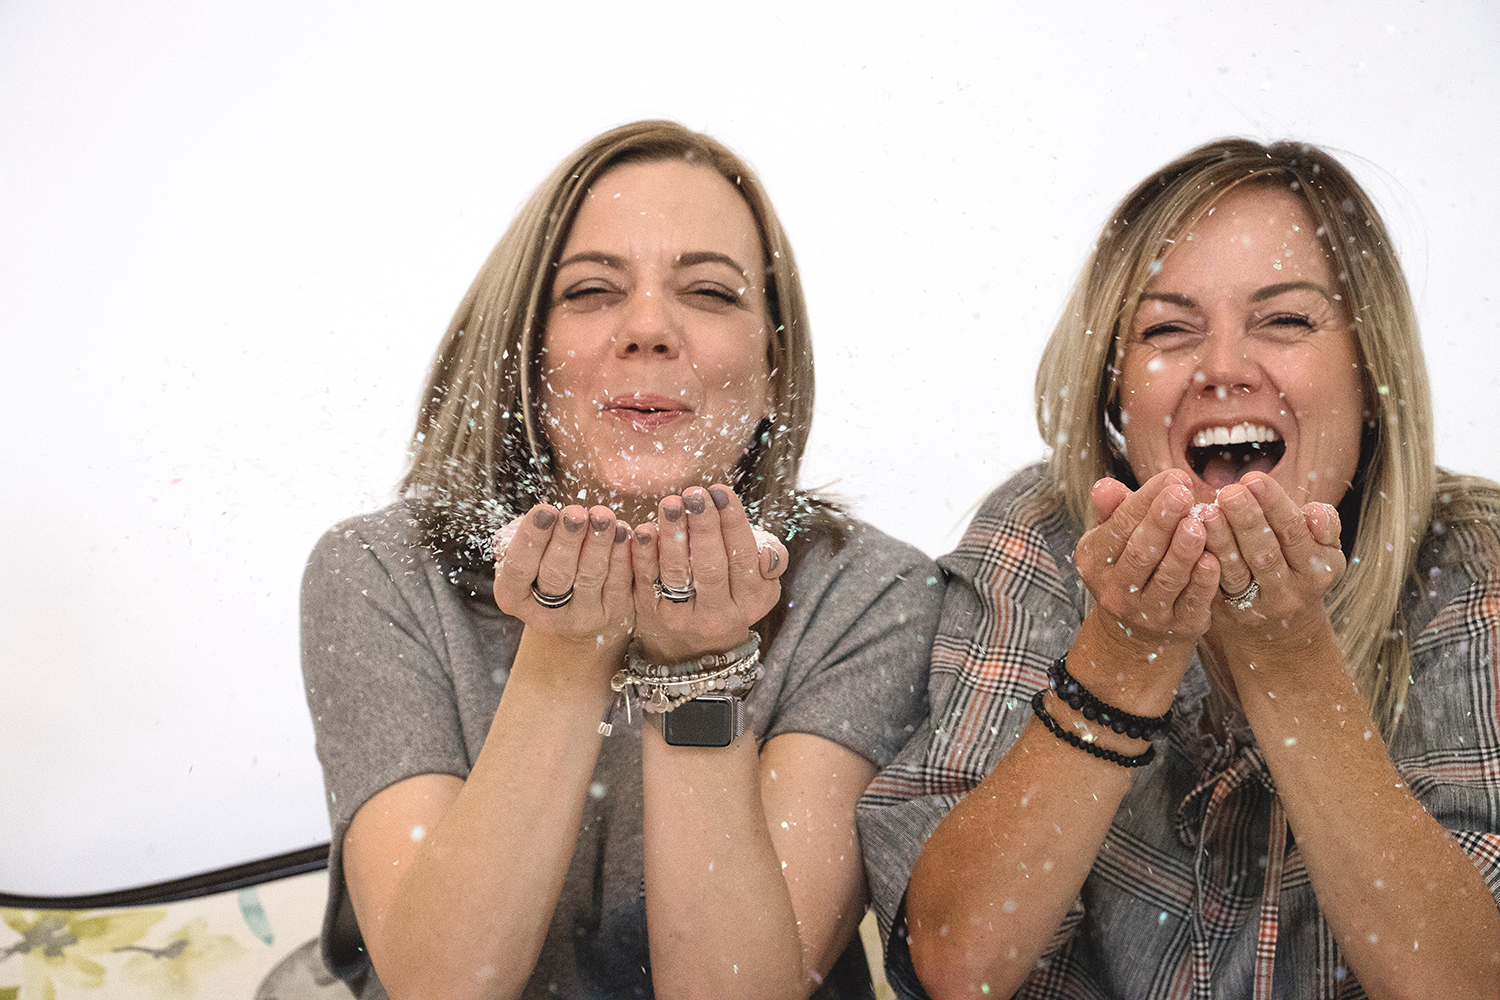 Heather Park (left) and Patti-Jo Pumble (right)